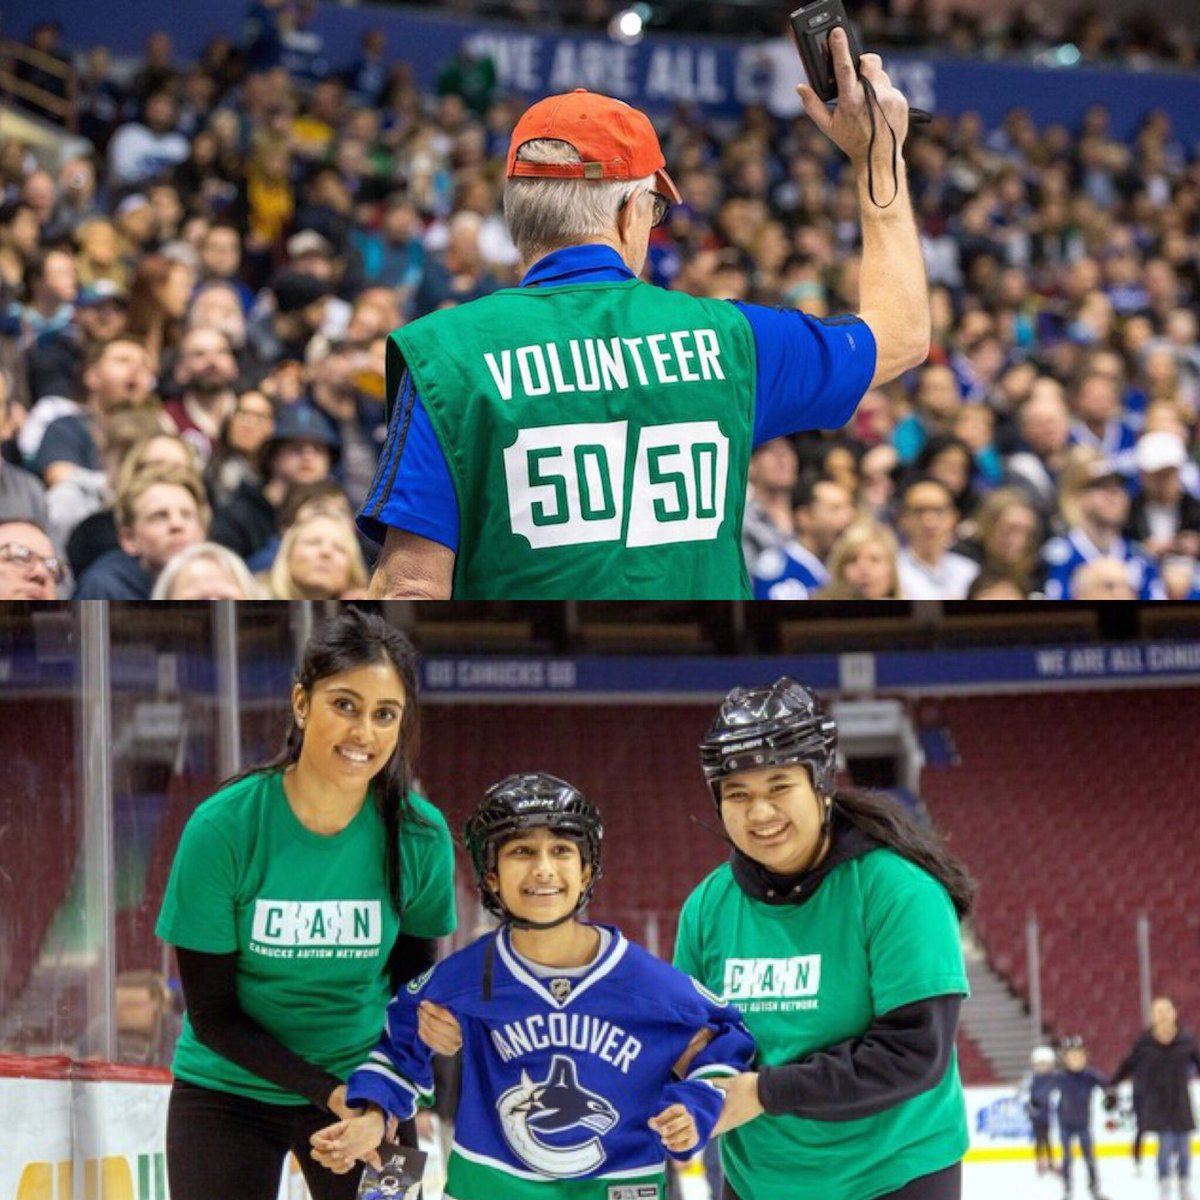 A personal thank you to all the people who generously volunteer their time to help @Canucksforkids and @canucksautism do great work in the community. You are appreciated!  #NationalVolunteerWeek2018 <br>http://pic.twitter.com/67KsbUsm9e